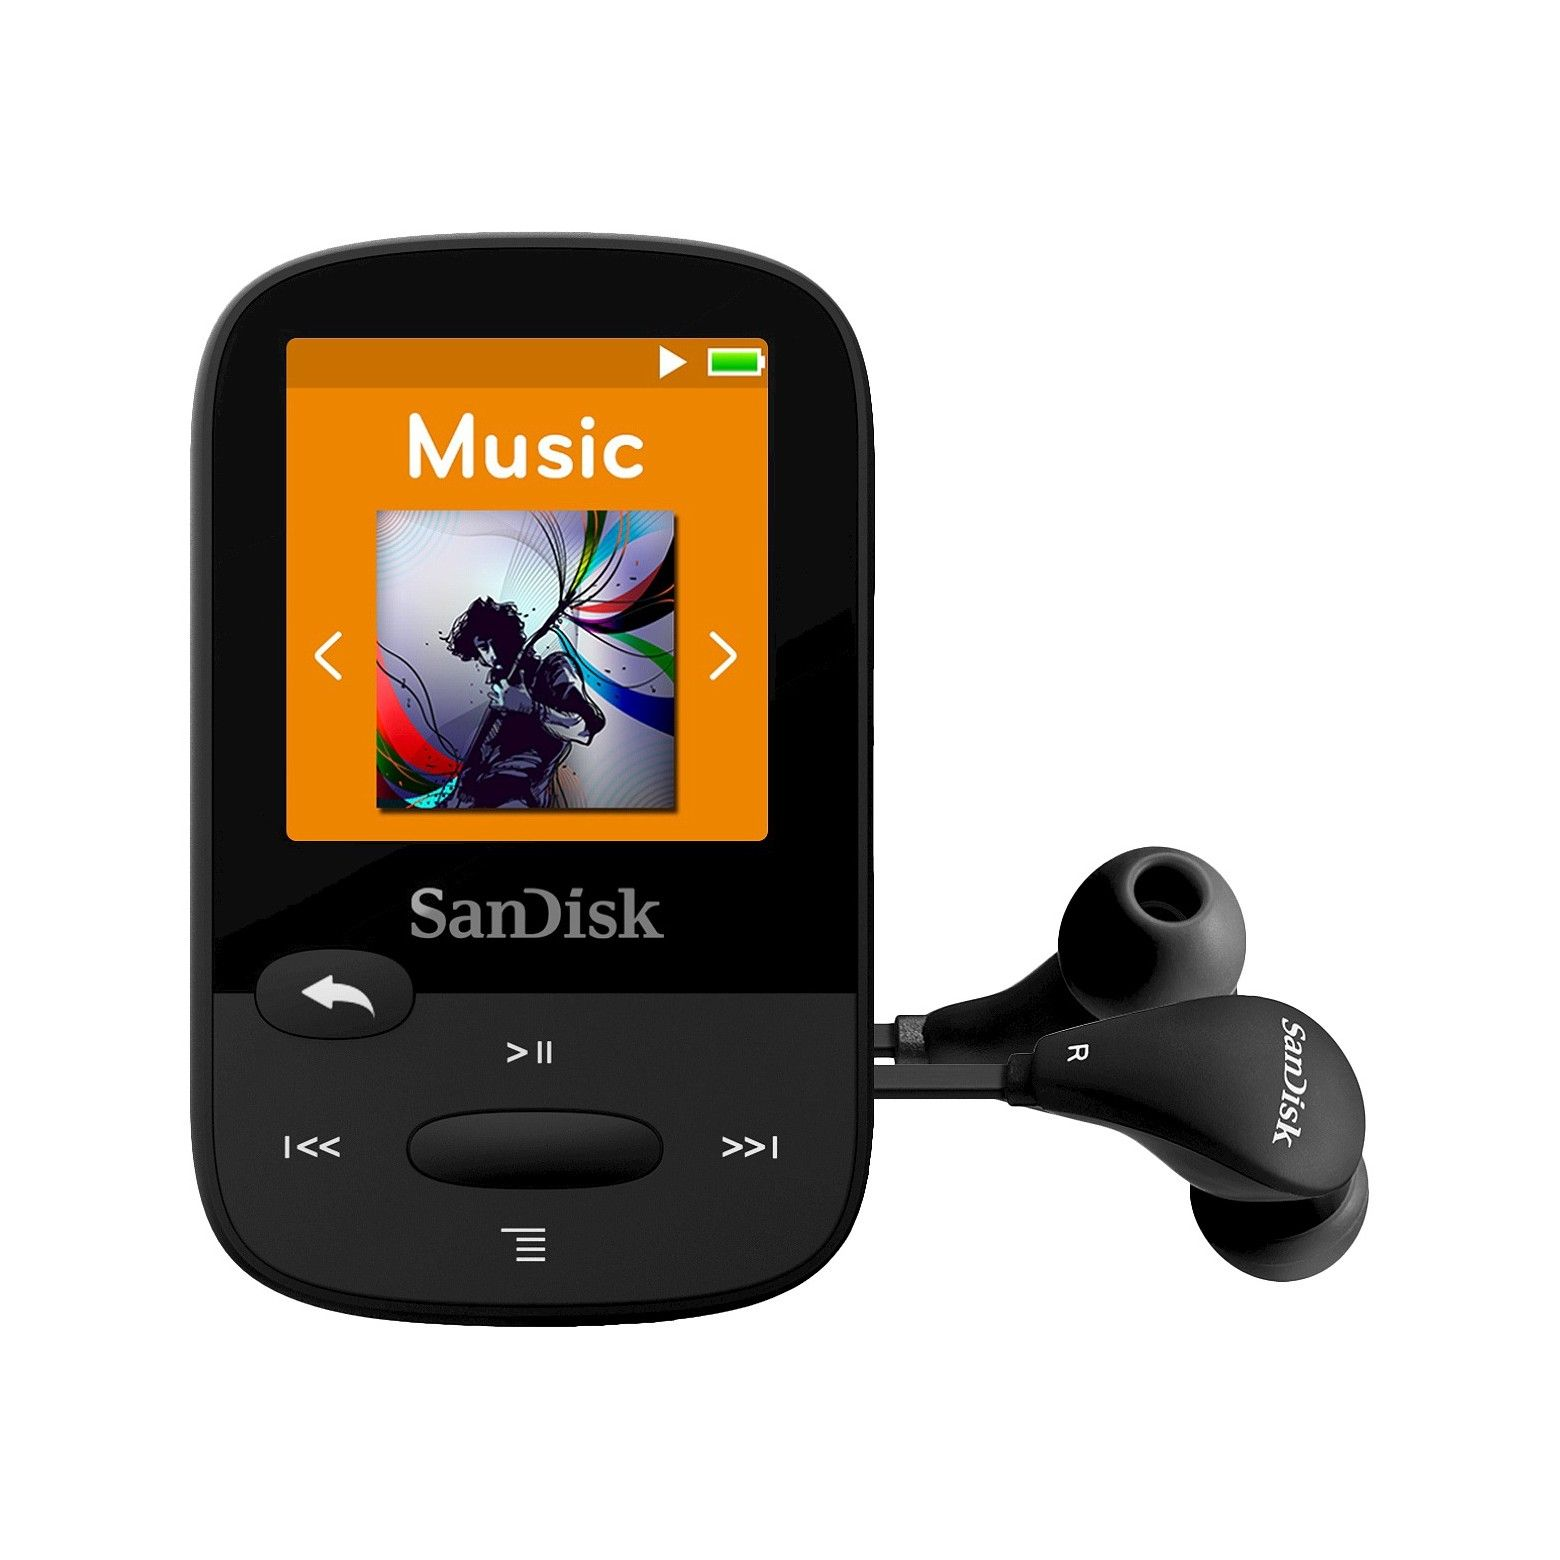 Listen to music, audiobooks, podcasts and other digital